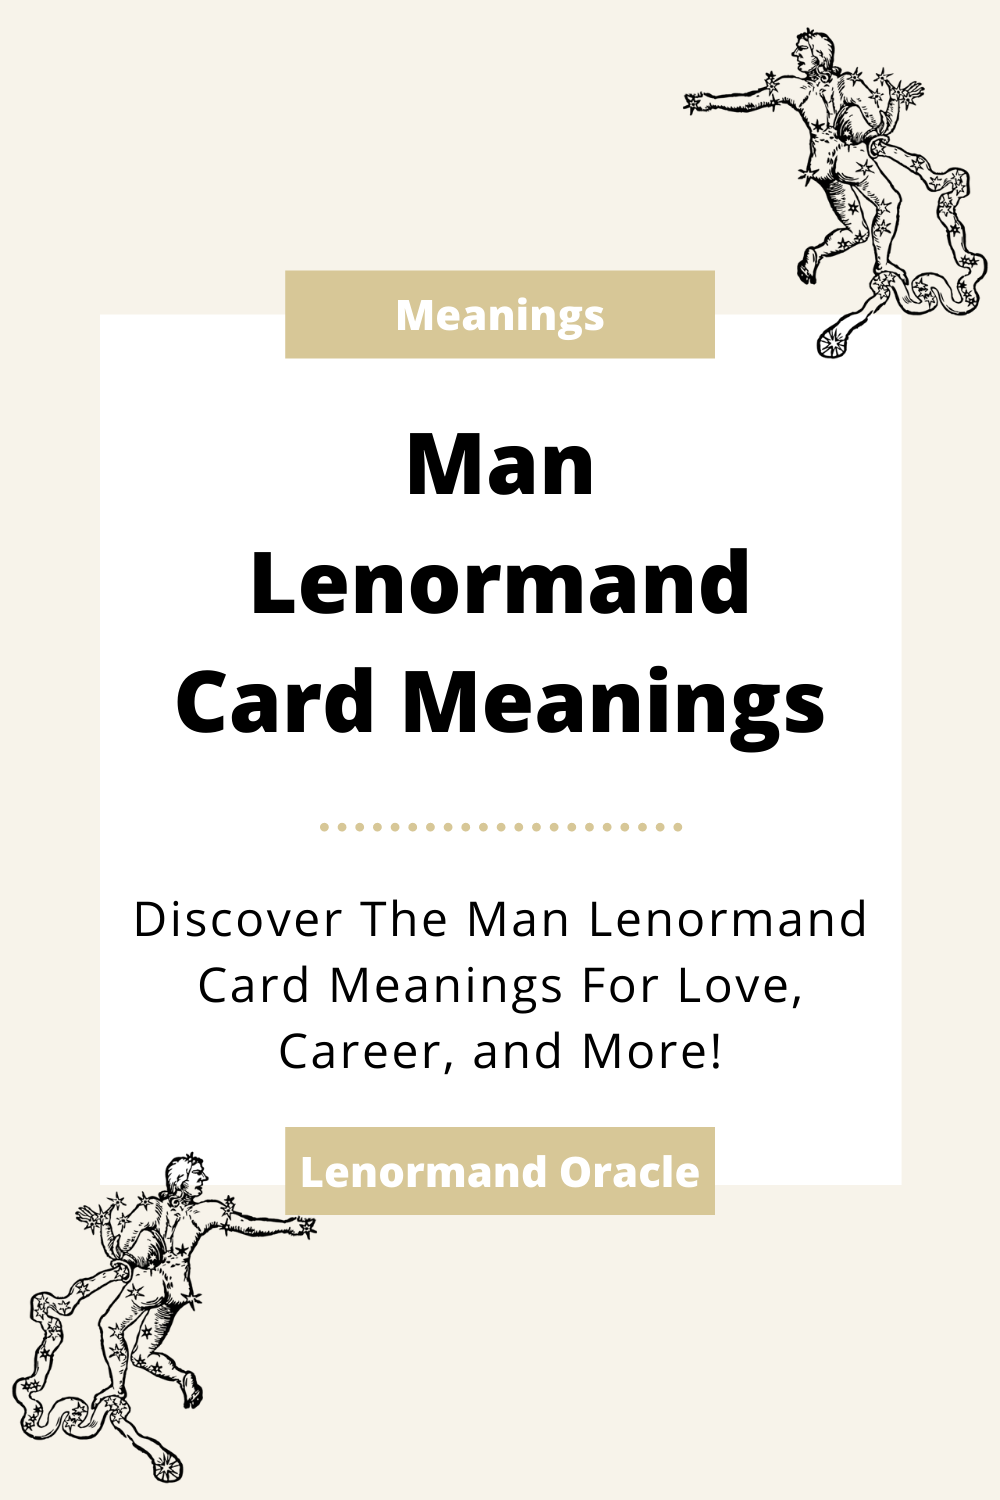 Lenormand Man Card Meaning